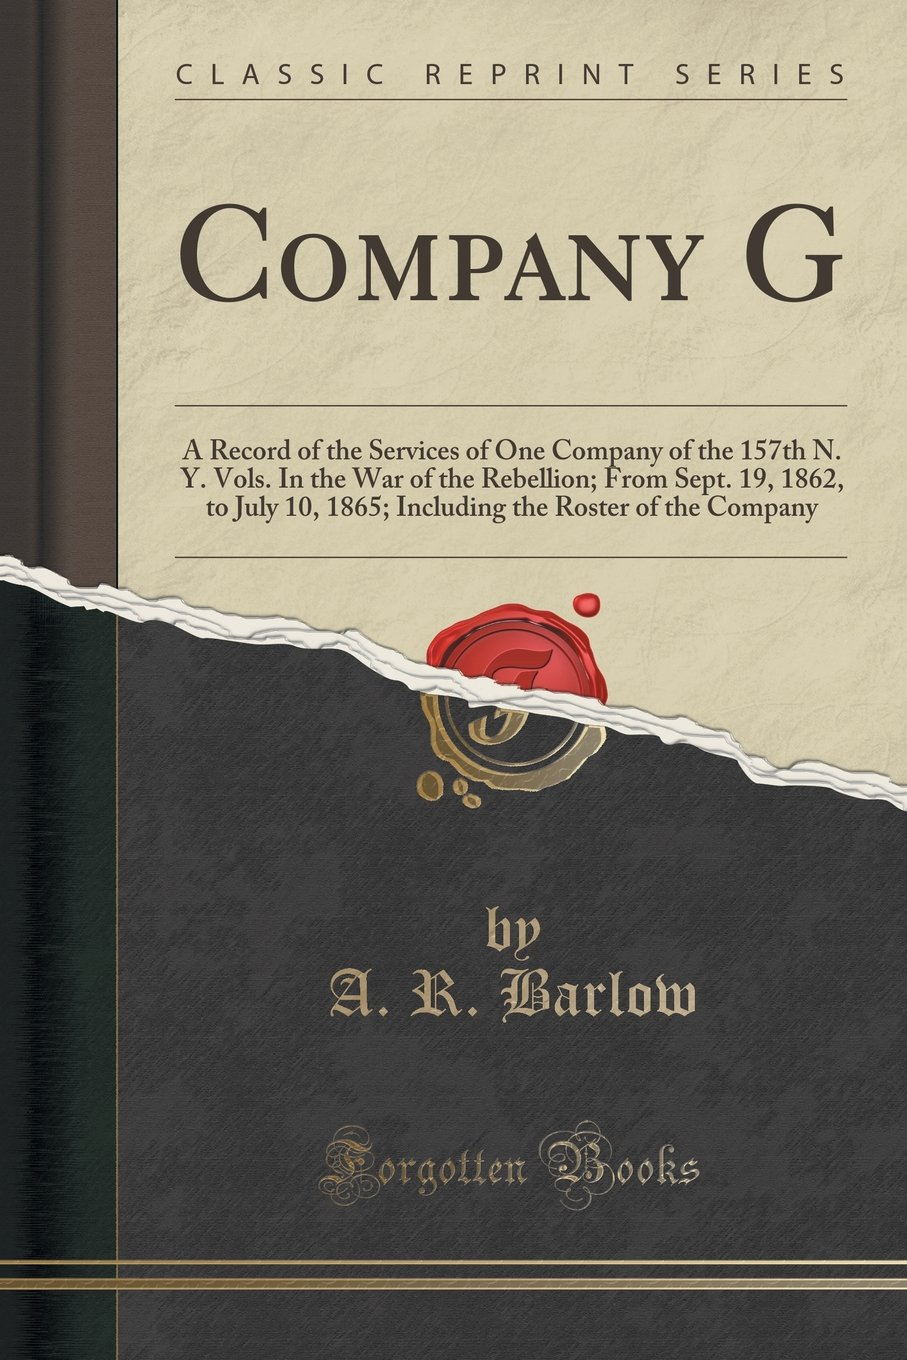 Company G: A Record of the Services of One Company of the 157th N. Y. Vols. In the War of the Rebellion; From Sept. 19, 1862, to July 10, 1865; Including the Roster of the Company (Classic Reprint) PDF